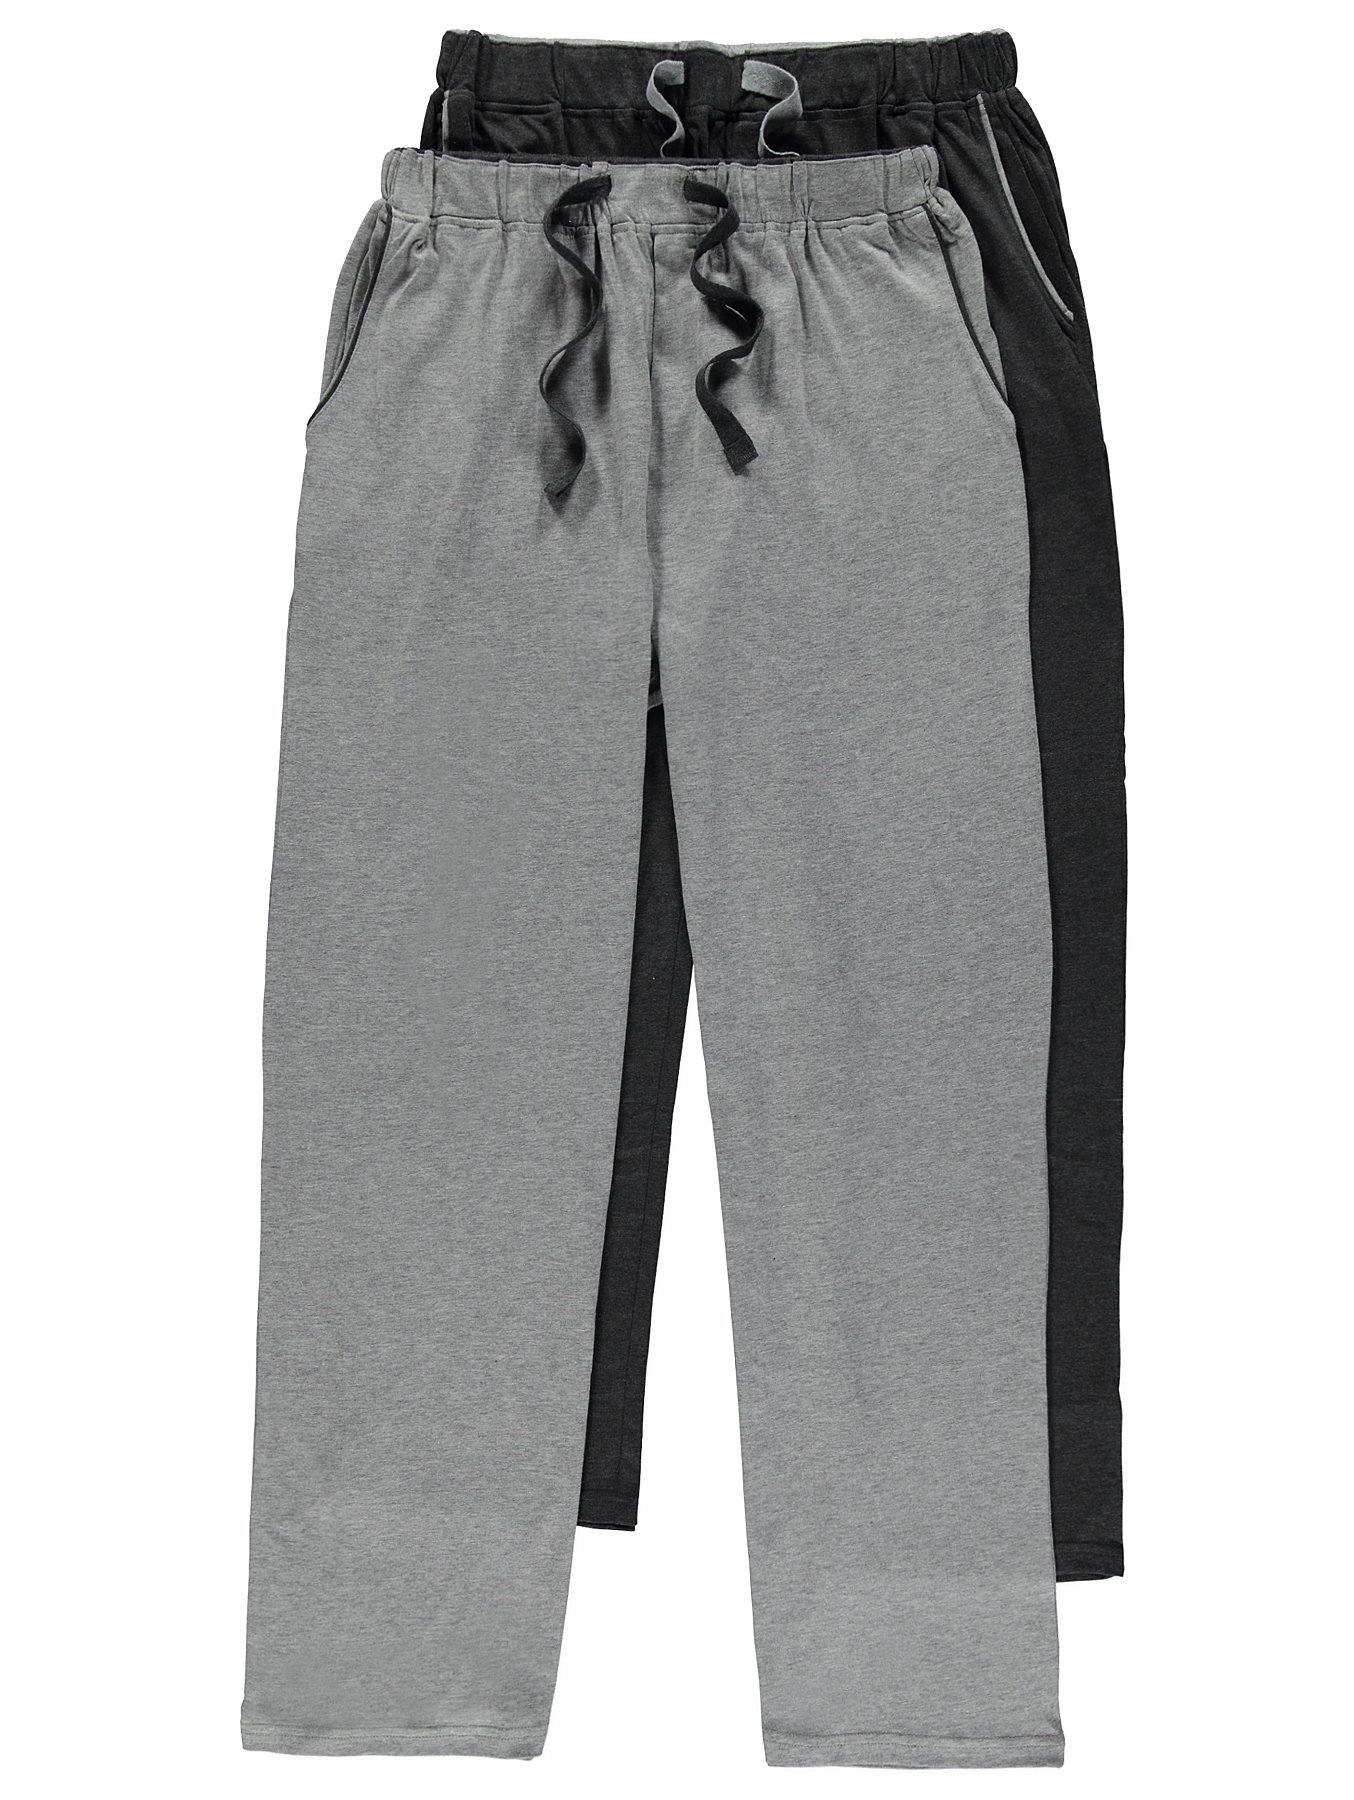 durable modeling wholesale outlet Good Prices Lounge Pants 2 Pack